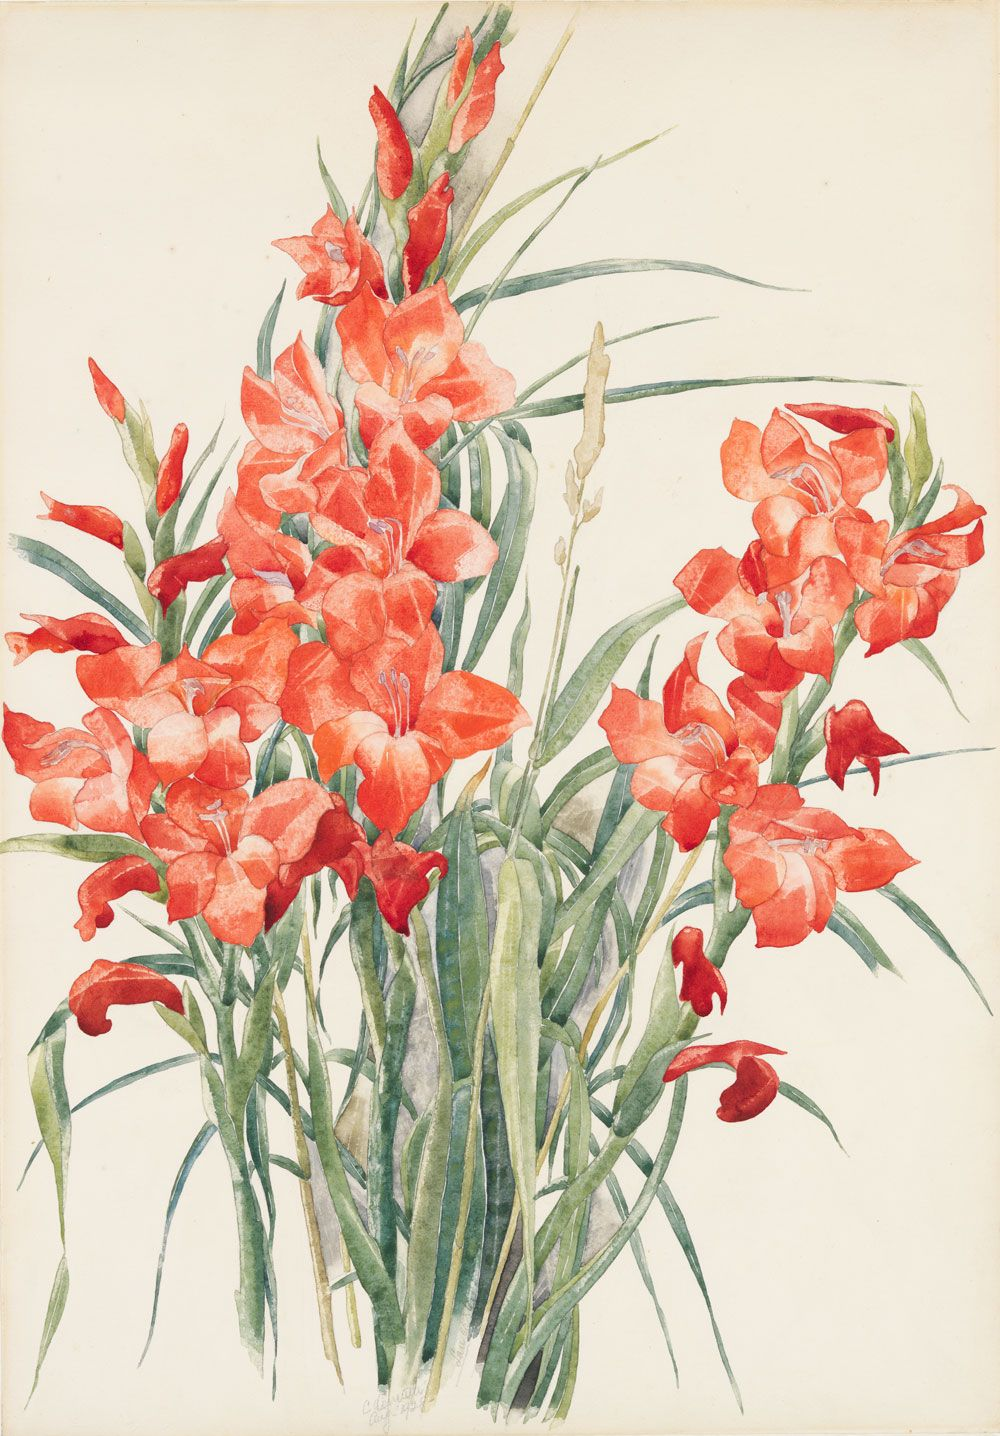 Charles Demuth was born today in 1883. Charles Demuth (1883–1935), Red Gladioli, 1928. Watercolor and graphite pencil on paper, Sheet: 20 x 14in. (50.8 x 35.6 cm). Whitney Museum of American Art, New...